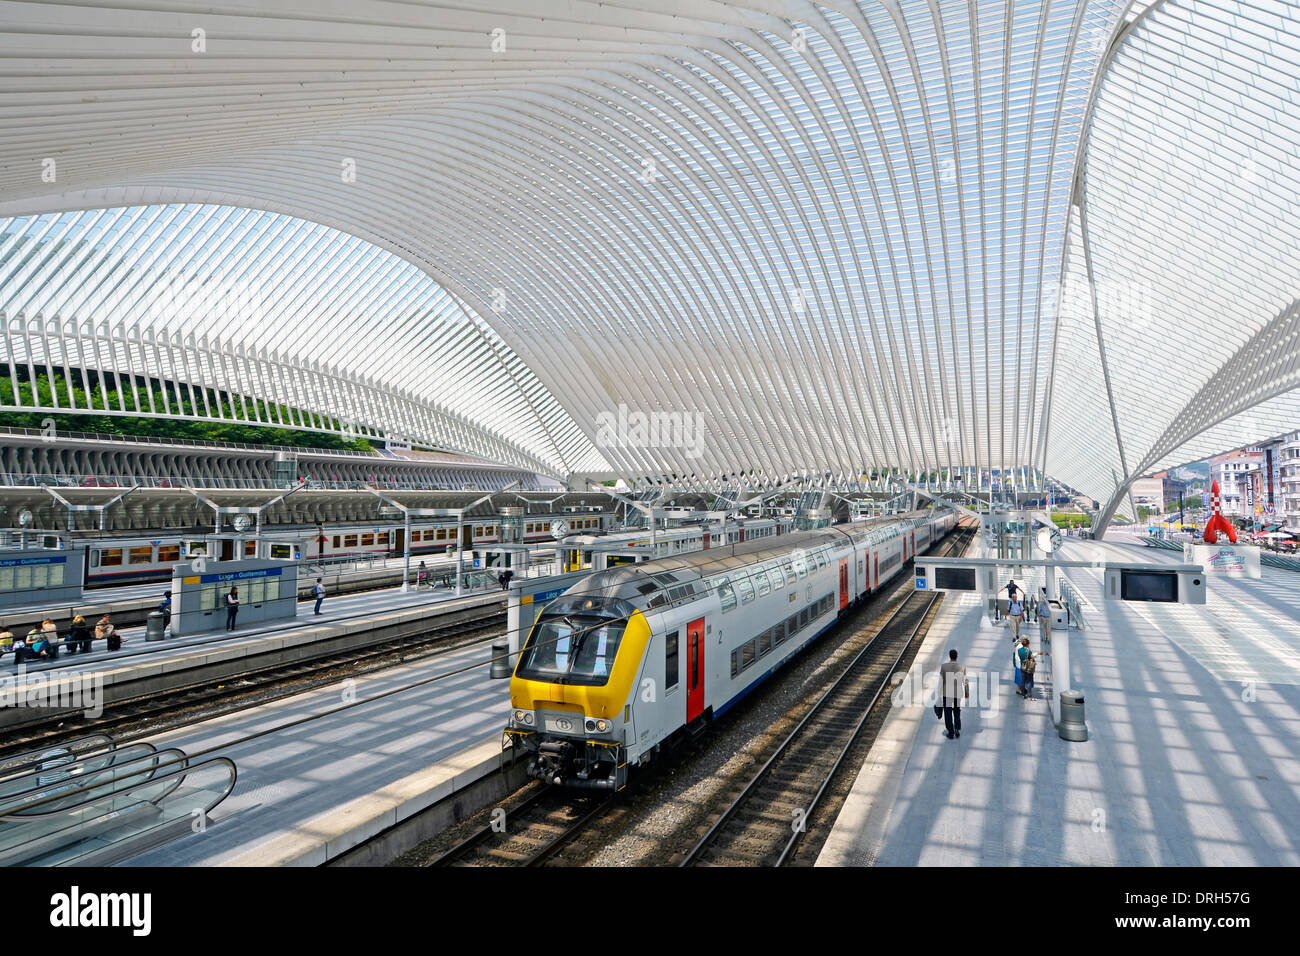 Belgium Liege Guillemins railway station by architect Santiago Calatrava unusual glass curved roof in modern building  train at train station platform - Stock Image